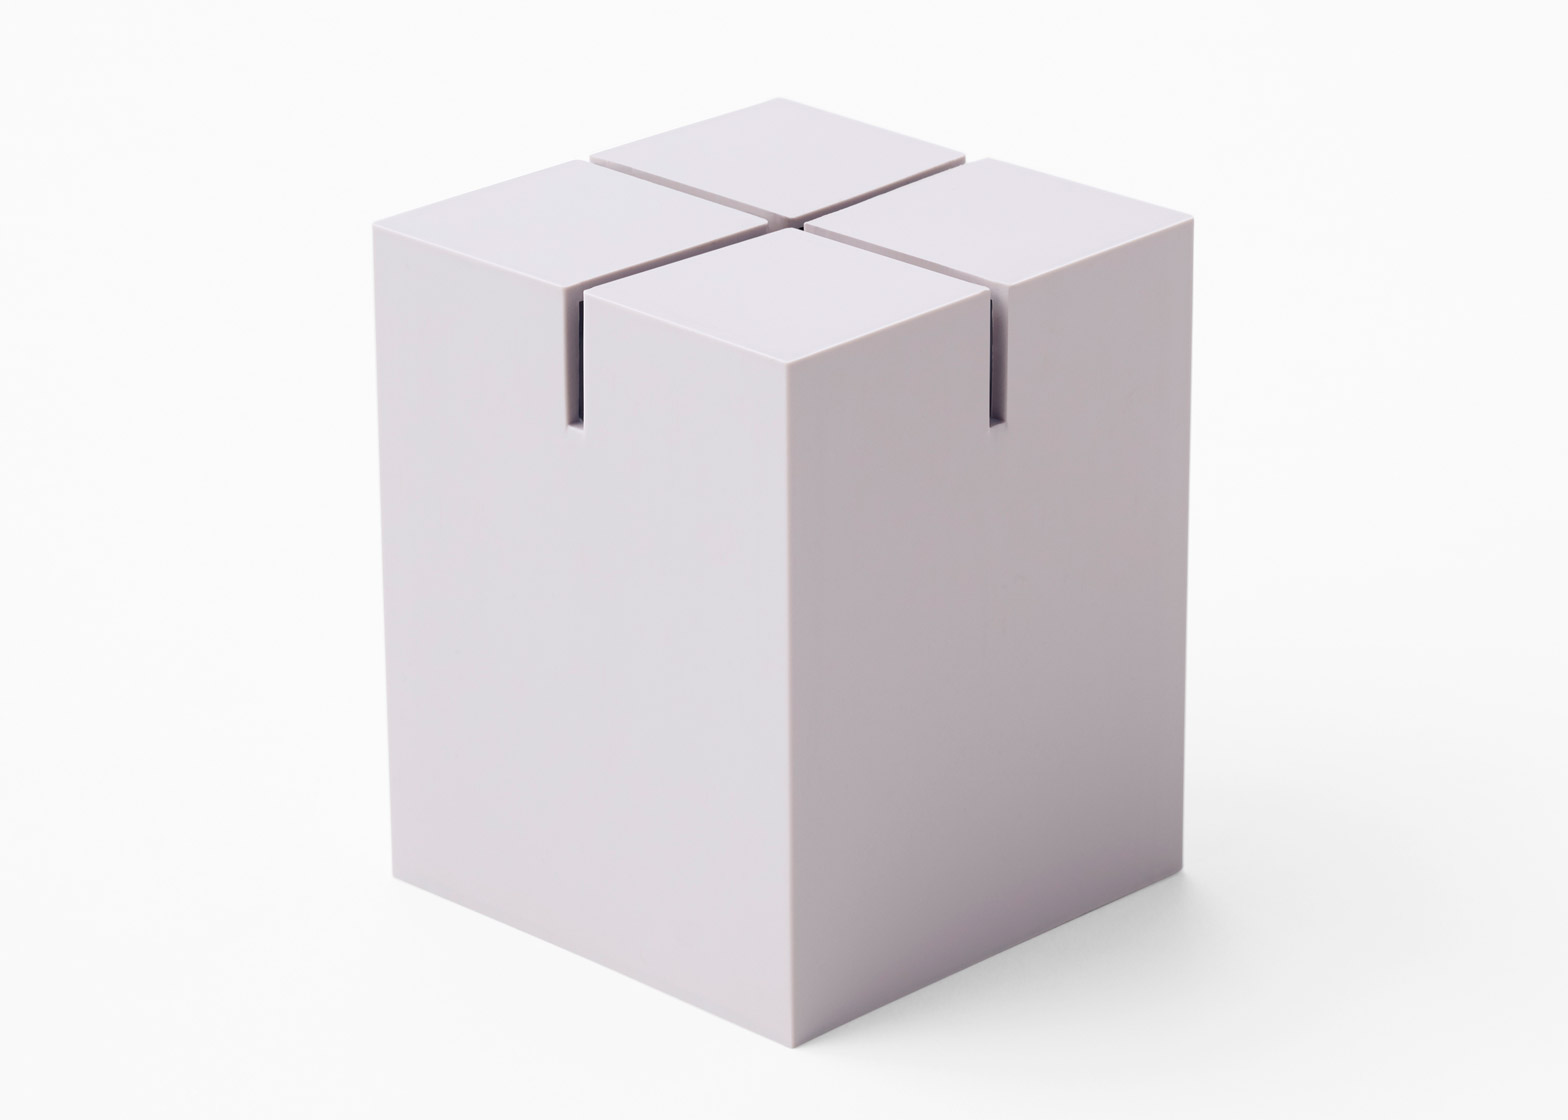 Meji umbrella stand by Nendo